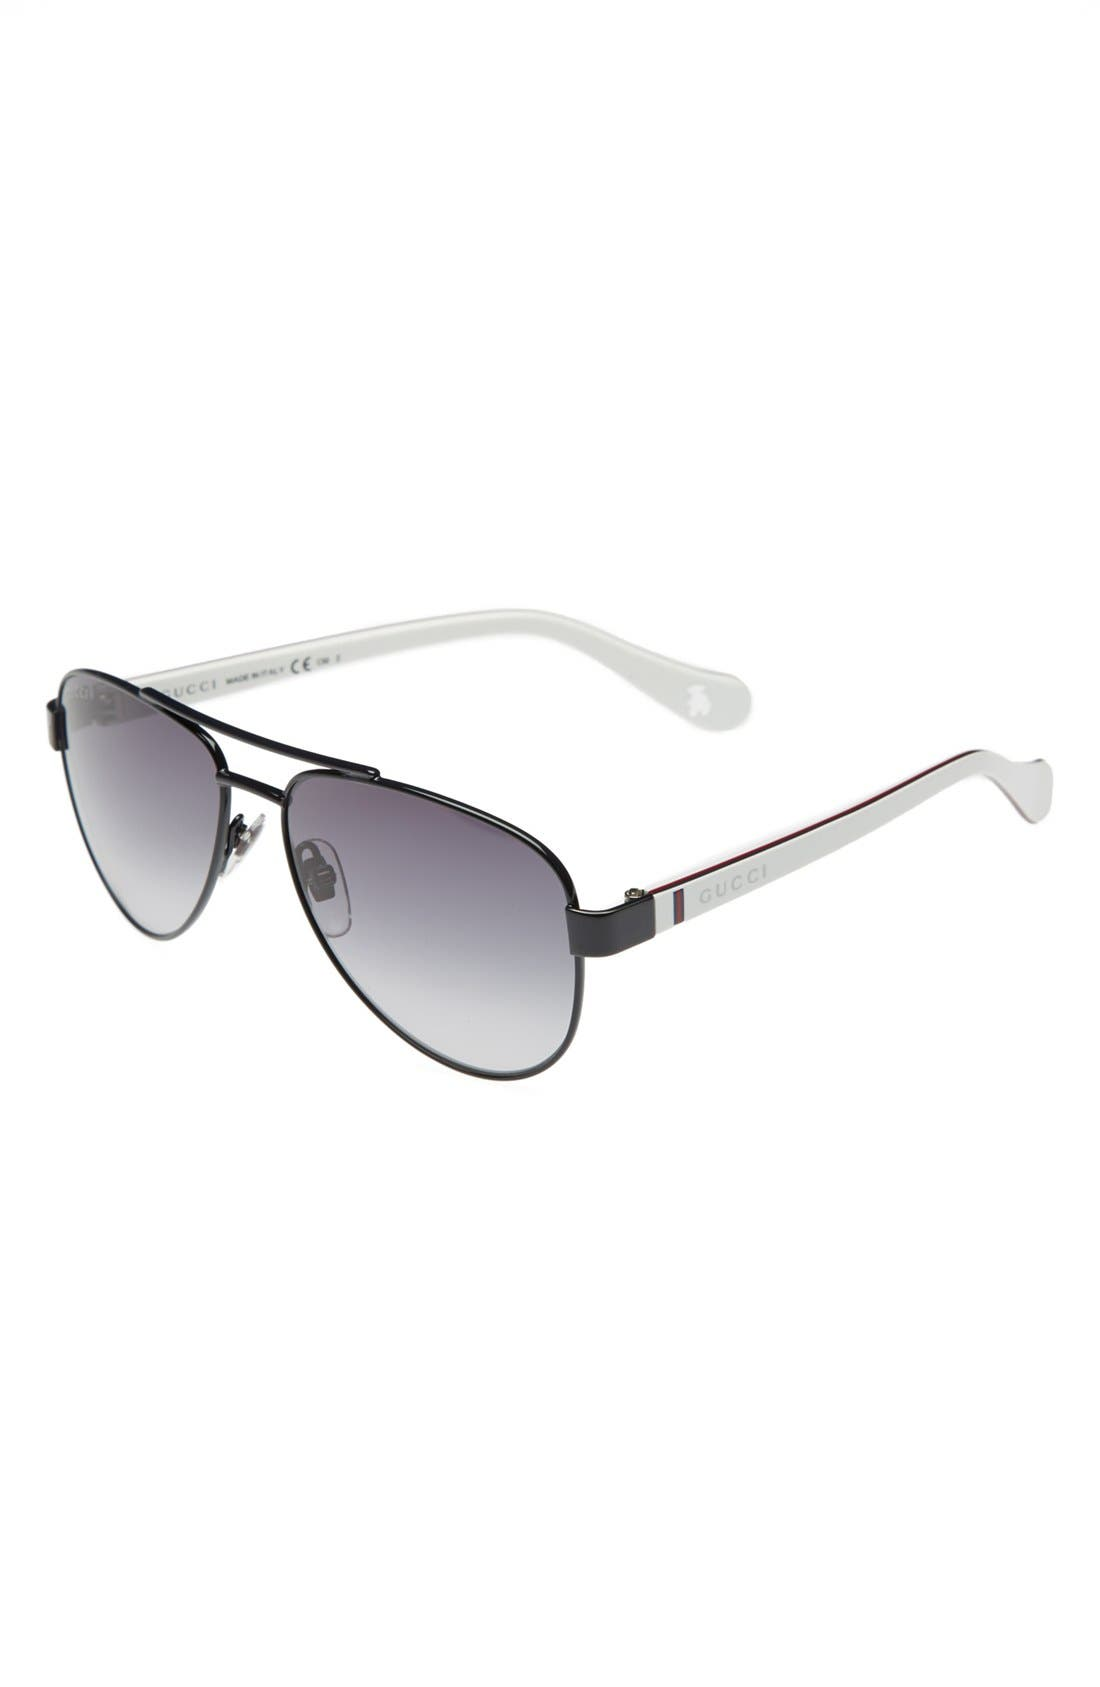 Main Image - Gucci 51mm Aviator Sunglasses (Kids)